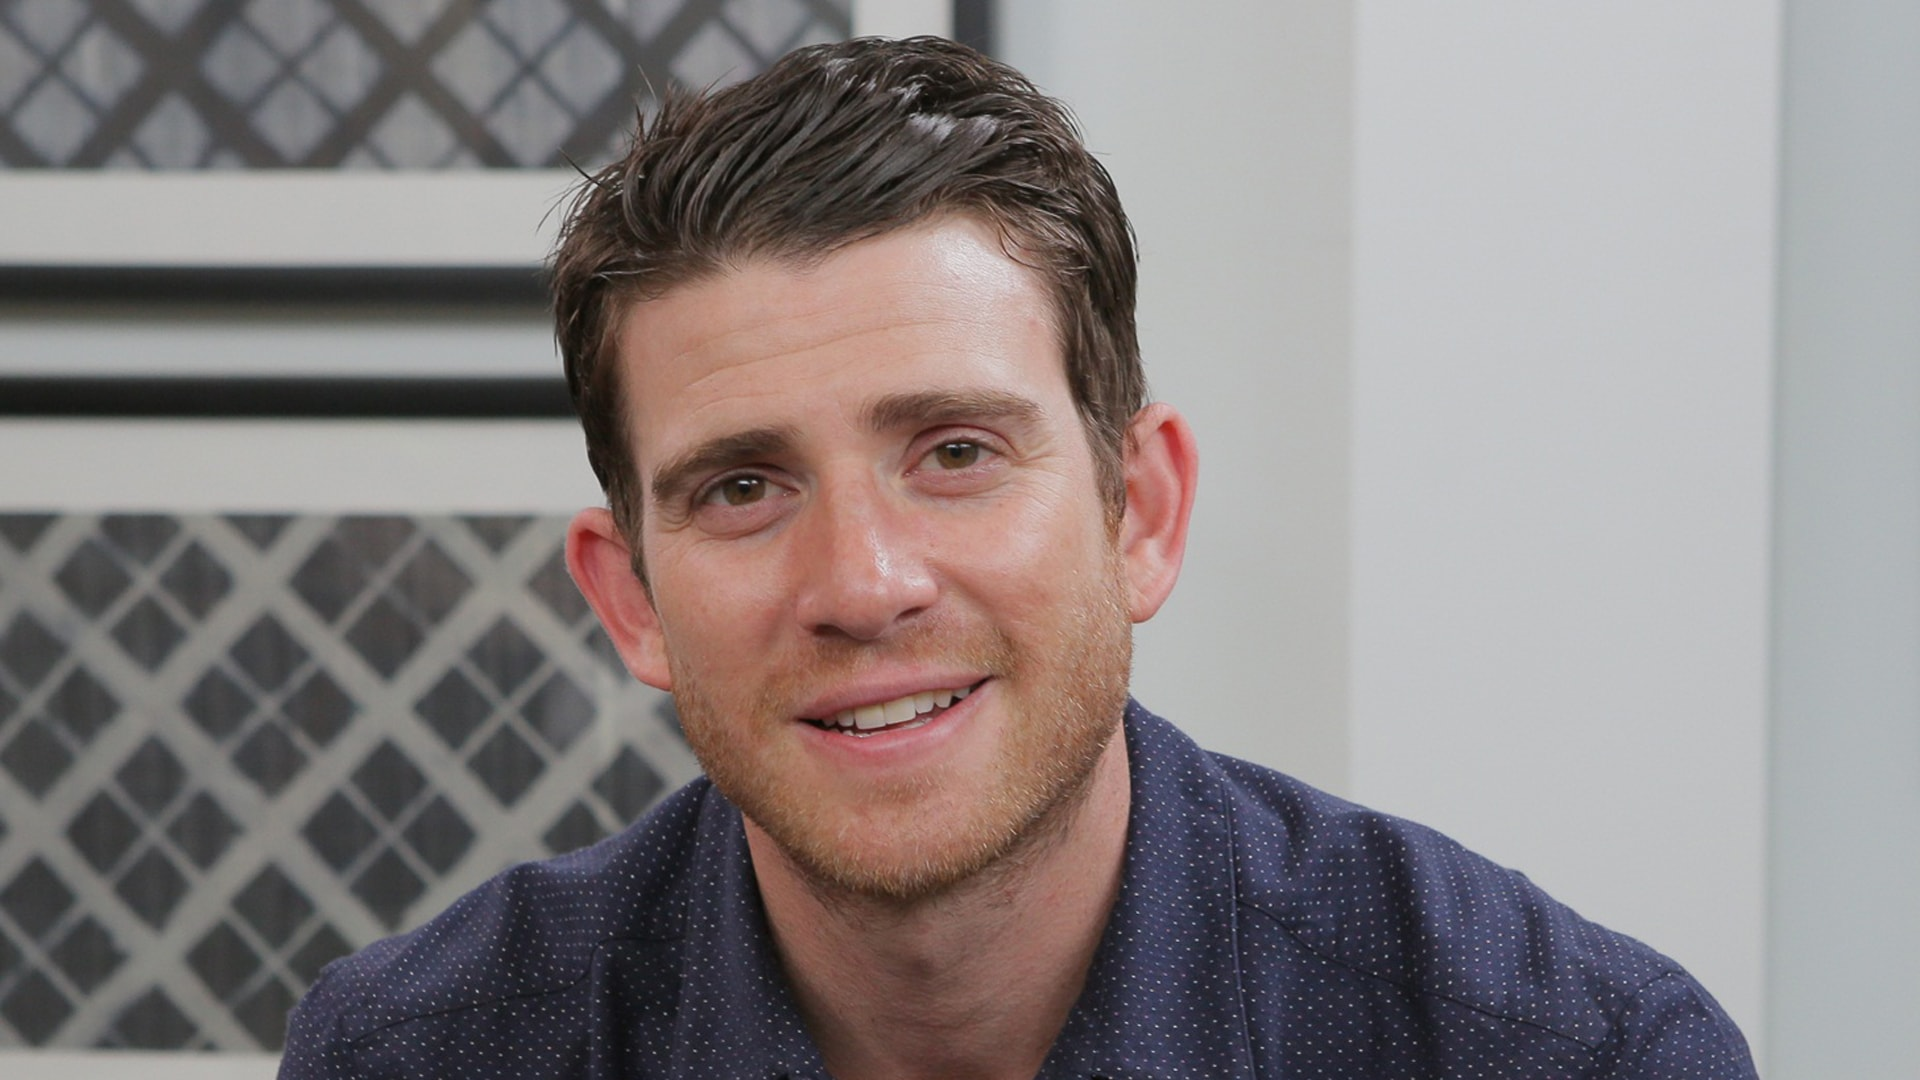 Bryan Greenberg HQ wallpapers